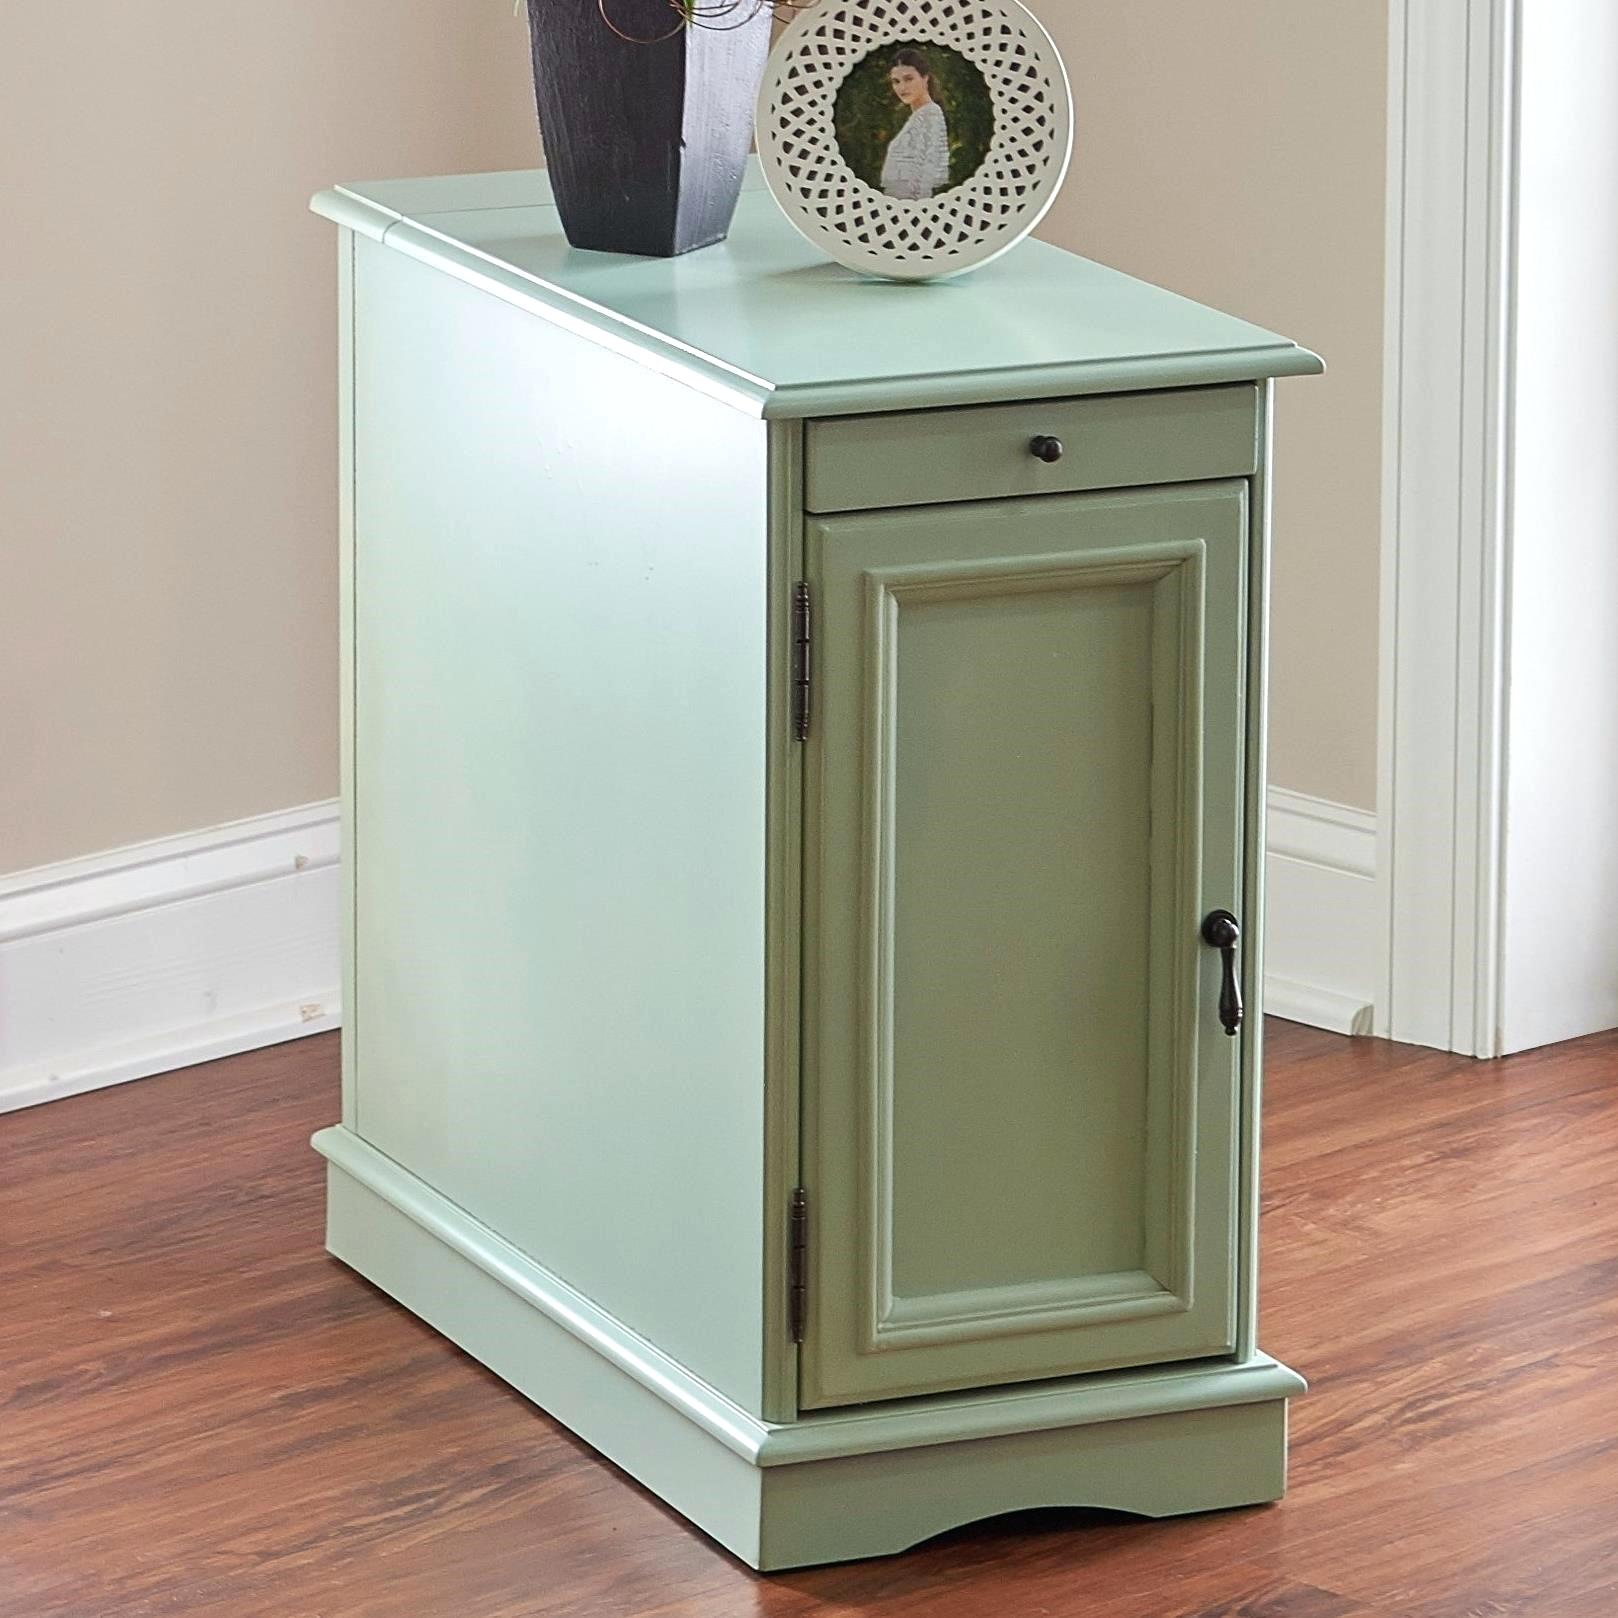 butler accent table driftwood round furniture aqua loft outdoor storage cabinet pottery barn chairs tall white bookshelf large covers square coffee plans entrance west elm small